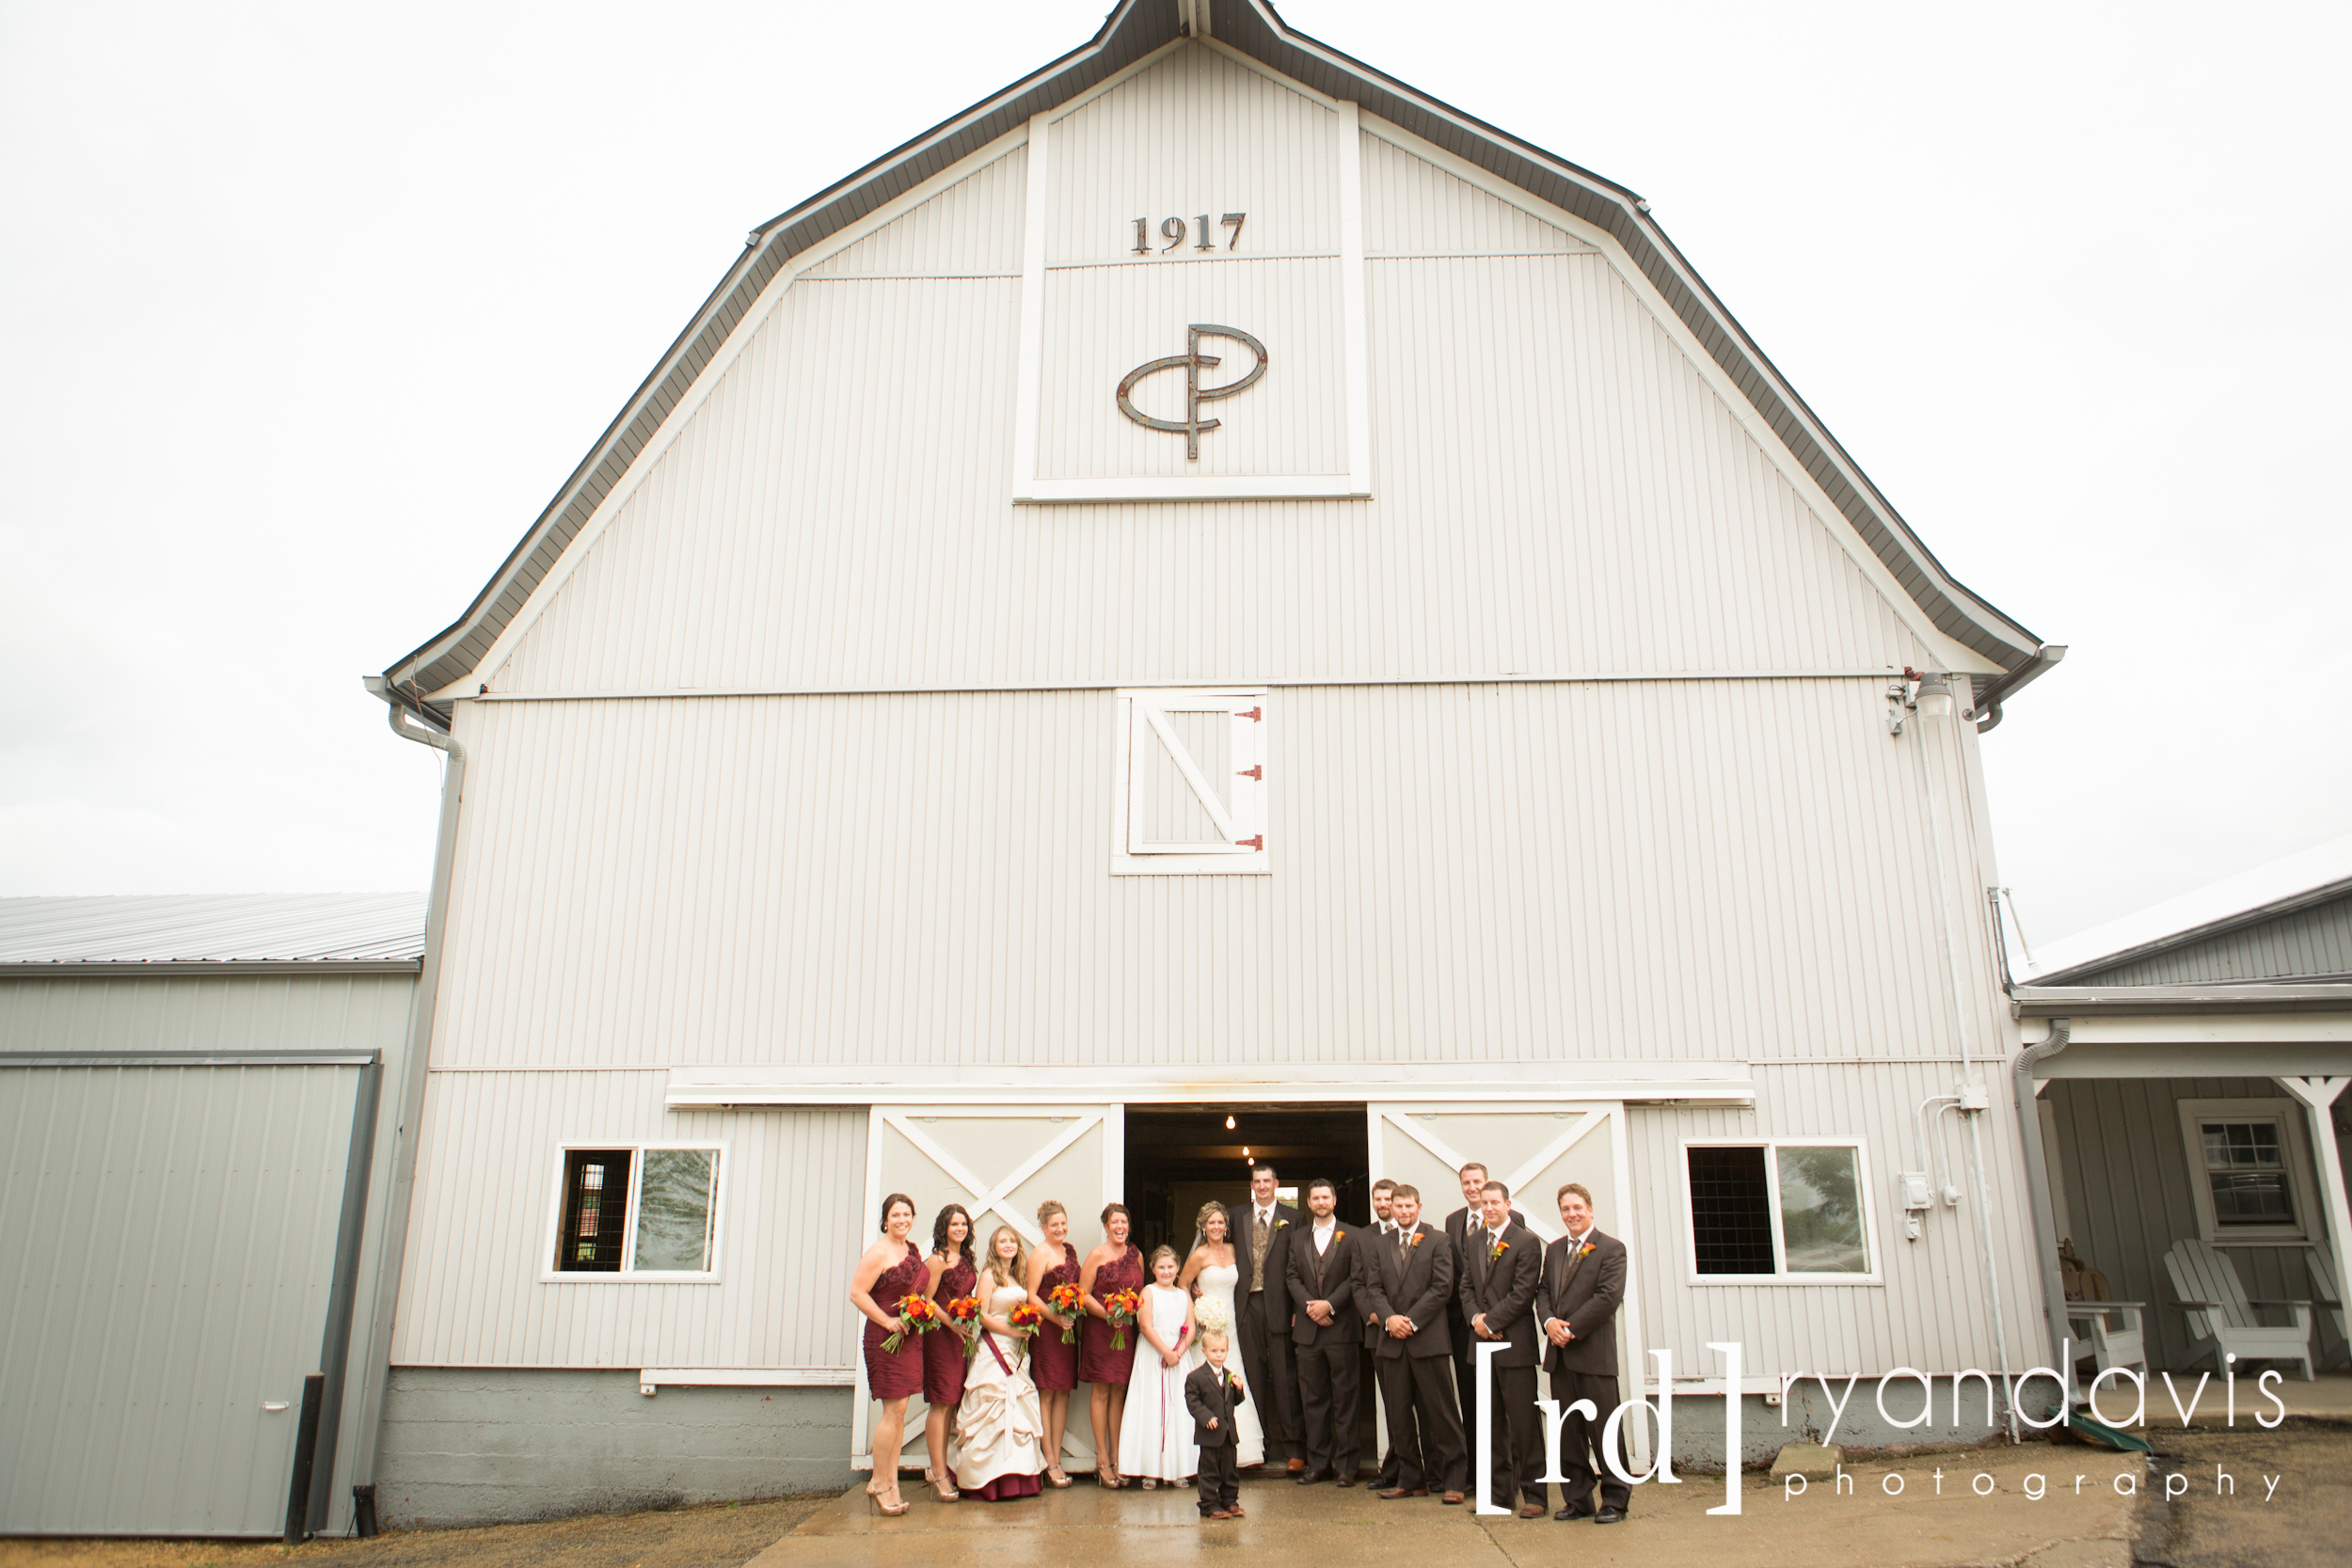 The Wedding Party at the Barn